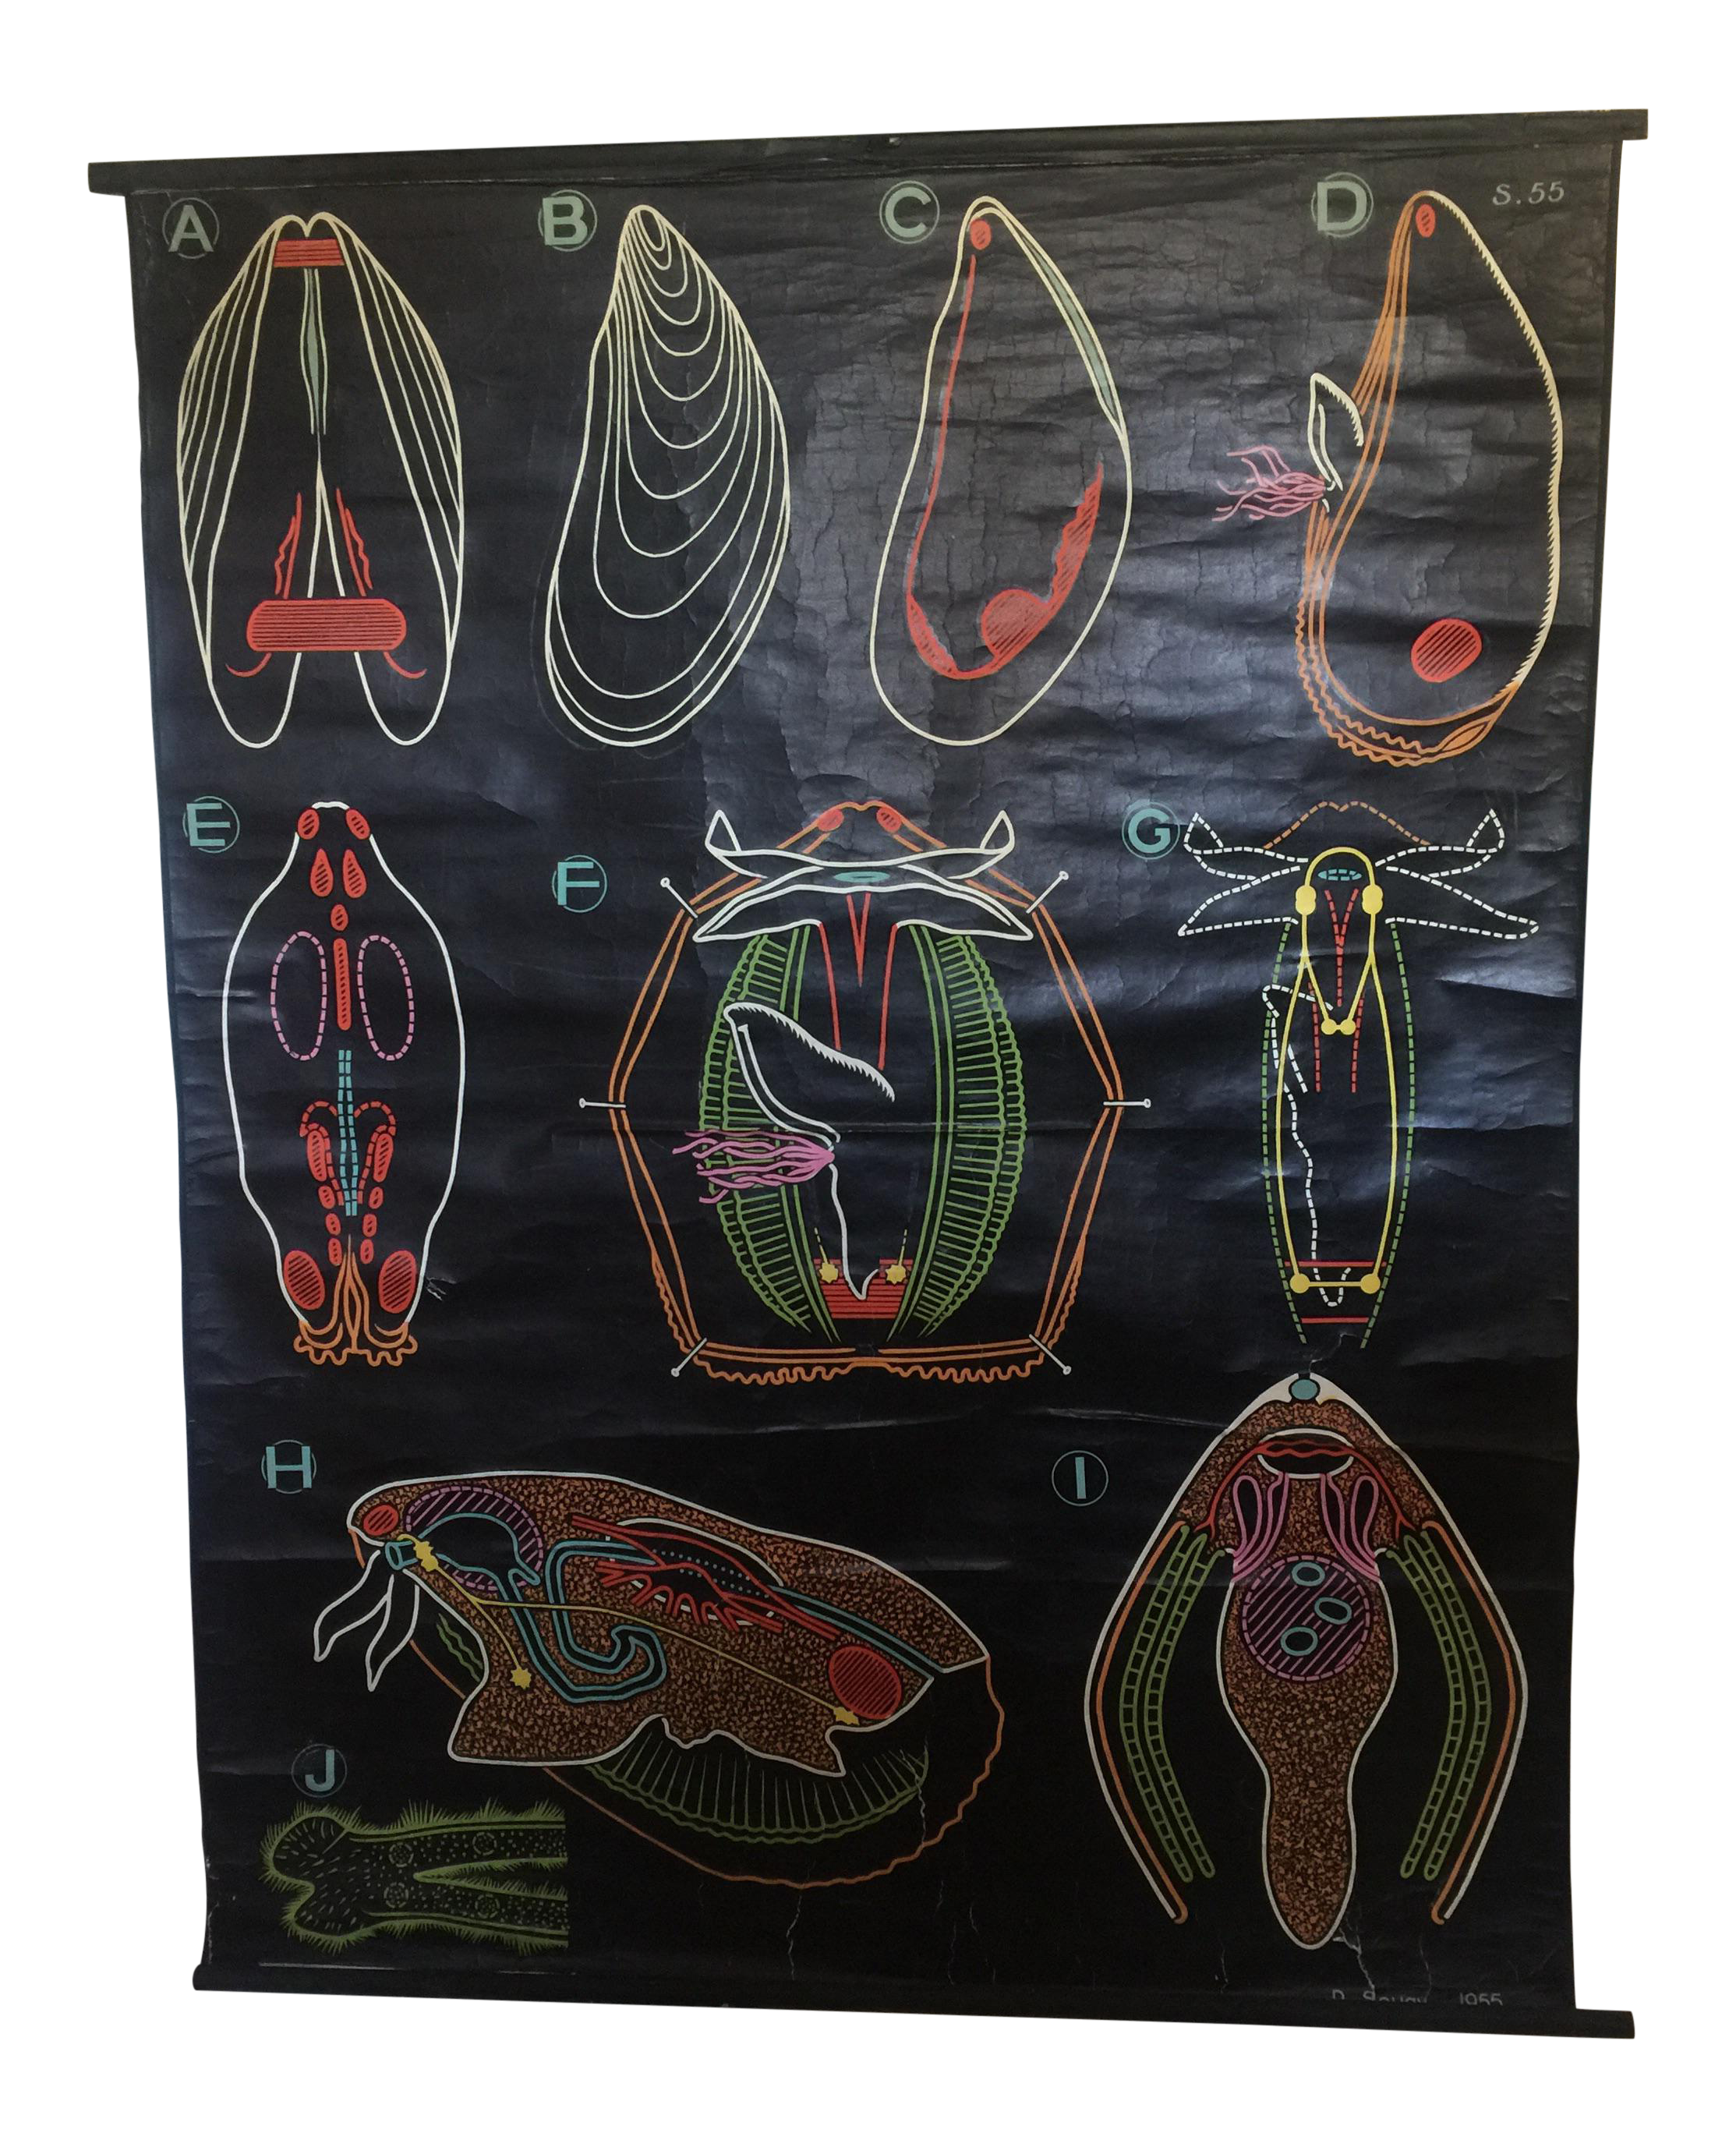 Vintage French Mussels Seafood Anatomy Poster | Chairish